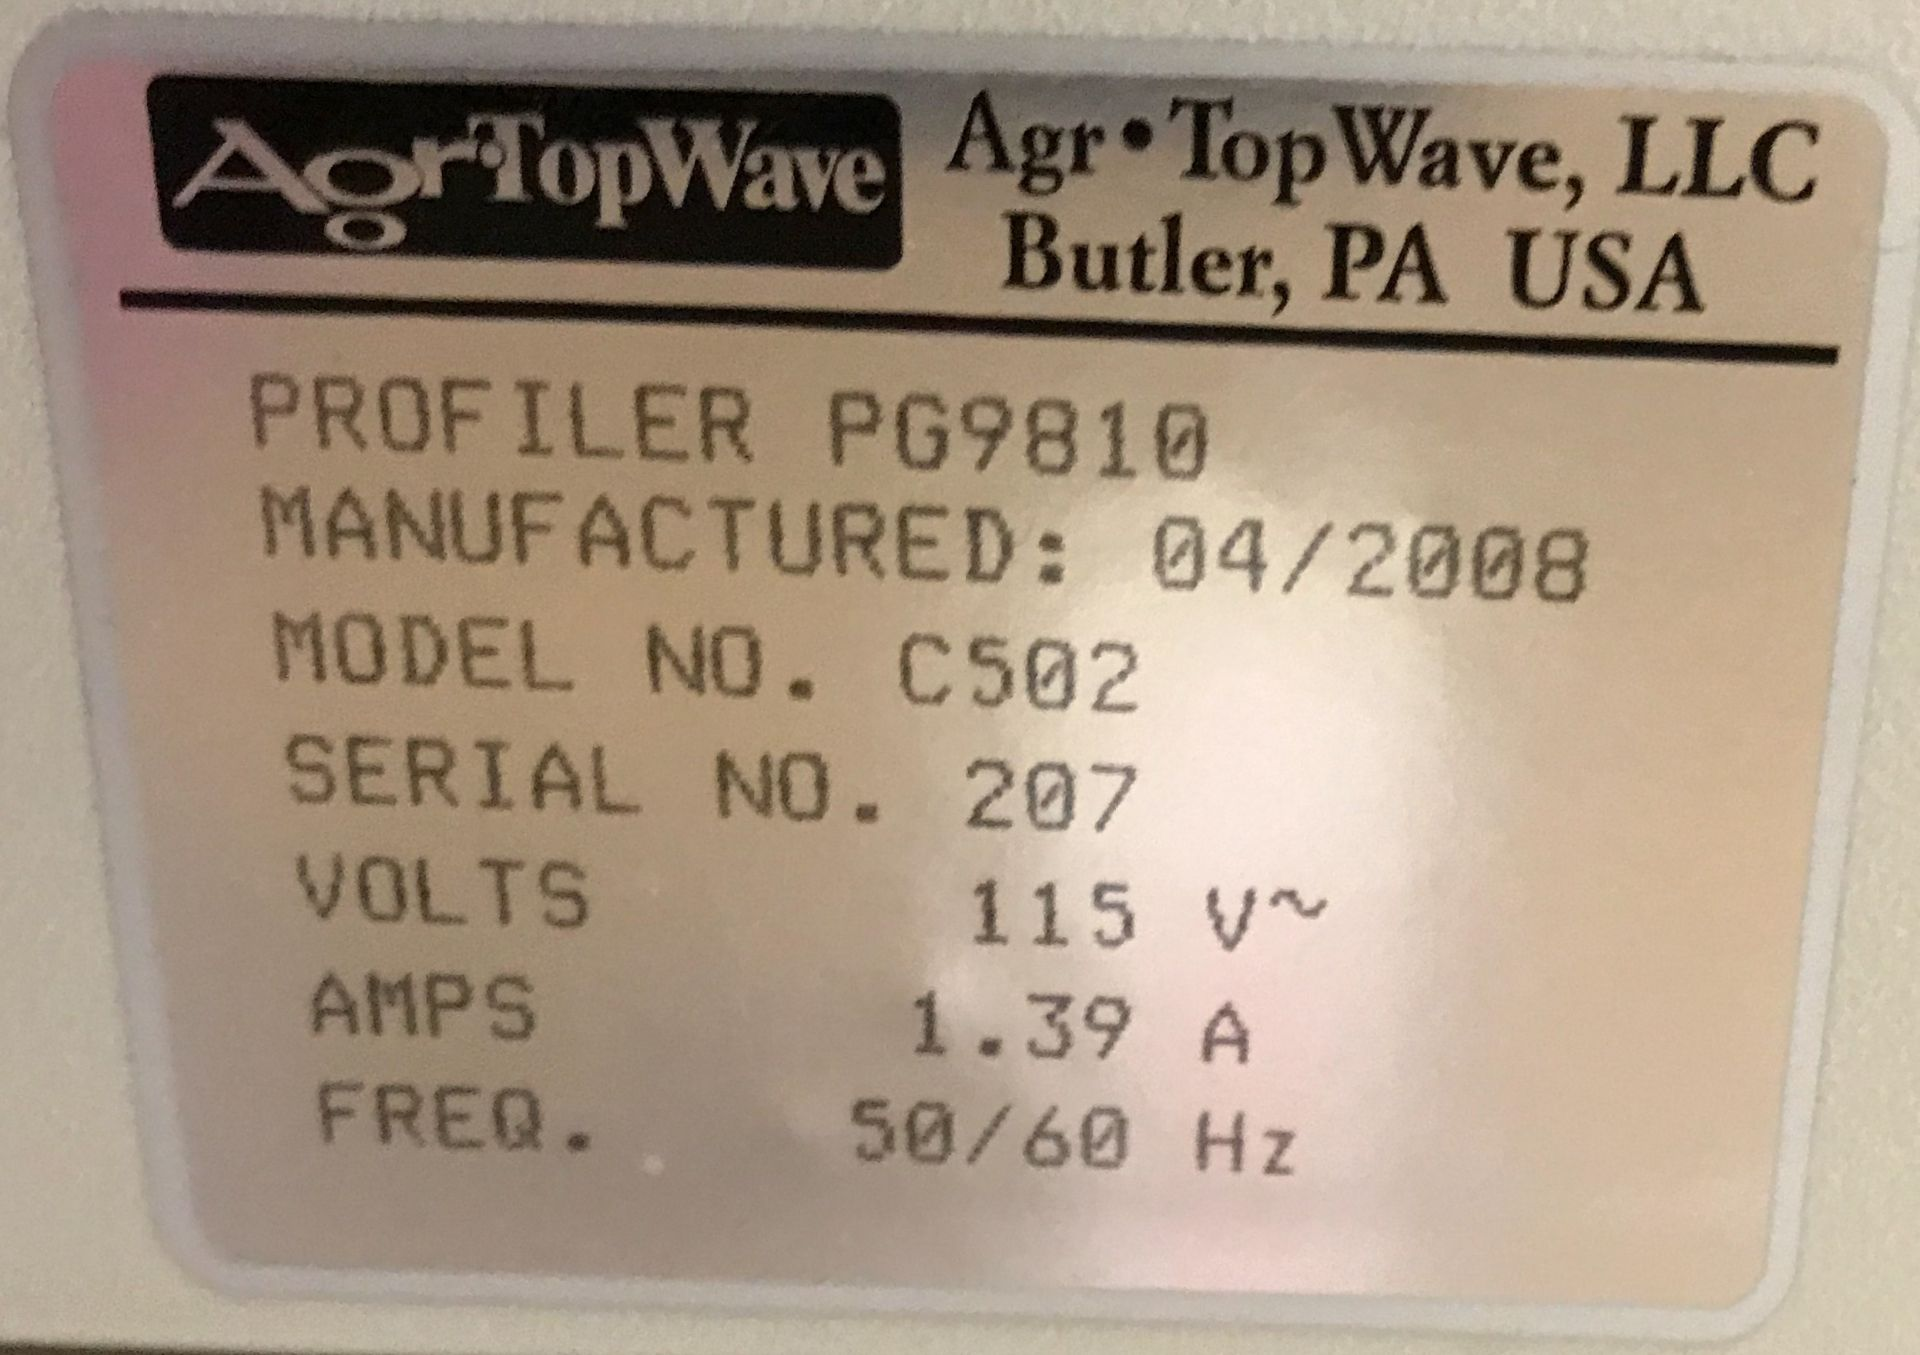 AGR TOPWAVE (2008) PG9810ML MULTI-LAYER DIGITAL PROFILER WITH TOUCH SCREEN CONTROL, S/N: 207 [ - Image 2 of 2